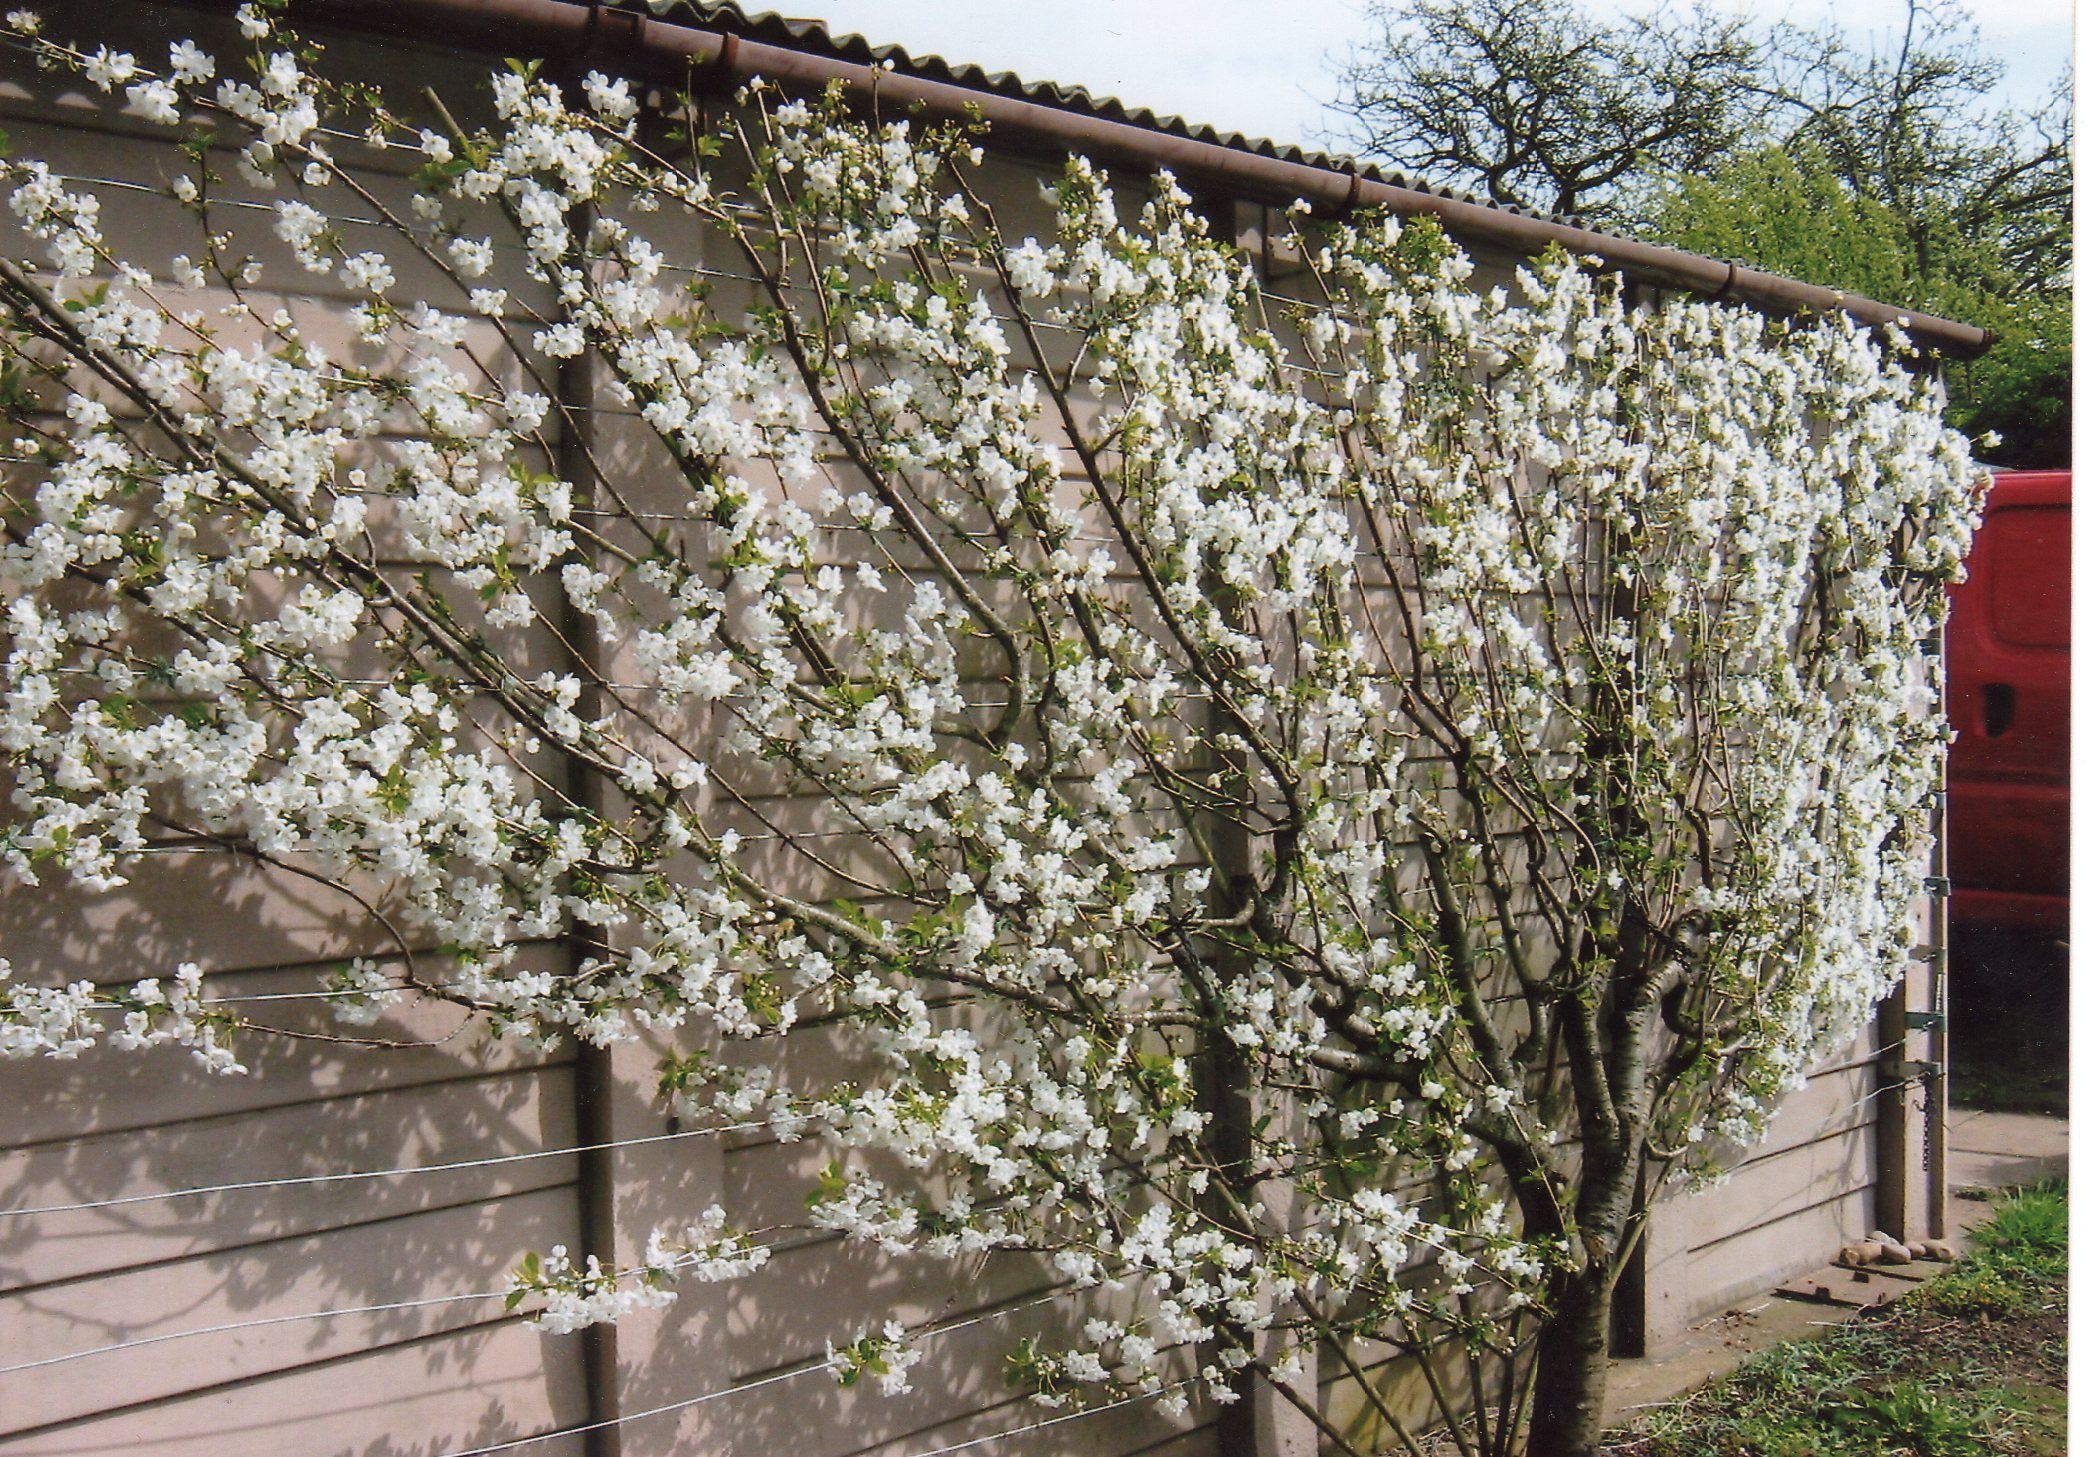 The Most Beautiful Trained Morello Cherry Weeping Cherry Tree Fruit Trees Magnolia Tree Landscaping